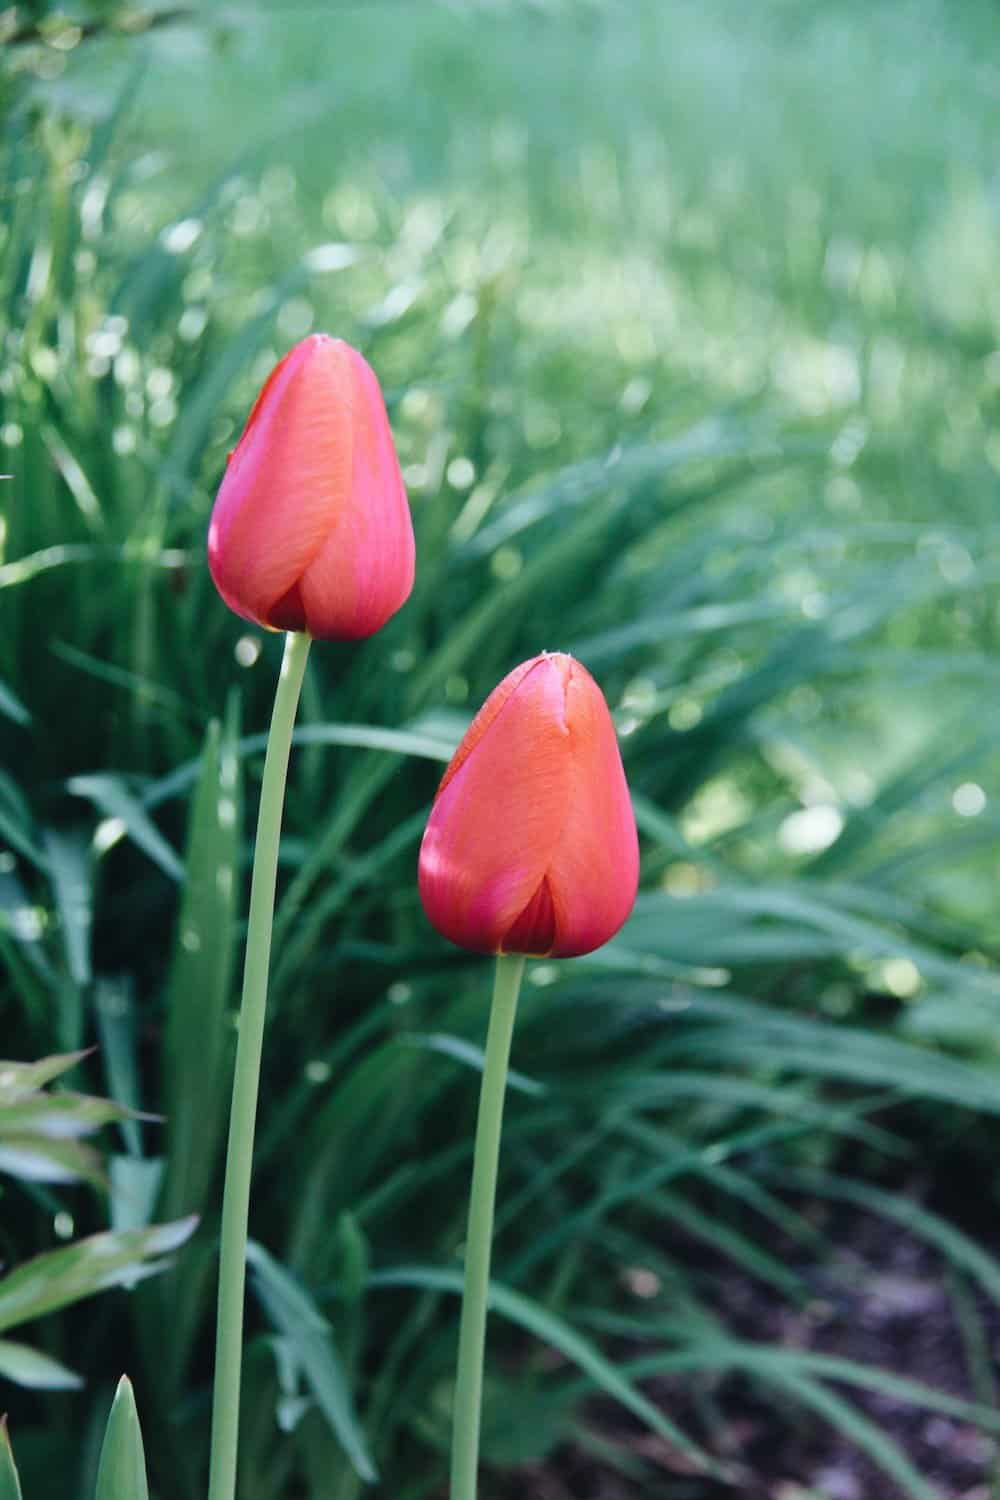 gardening tips showing pink tulips in a green garden